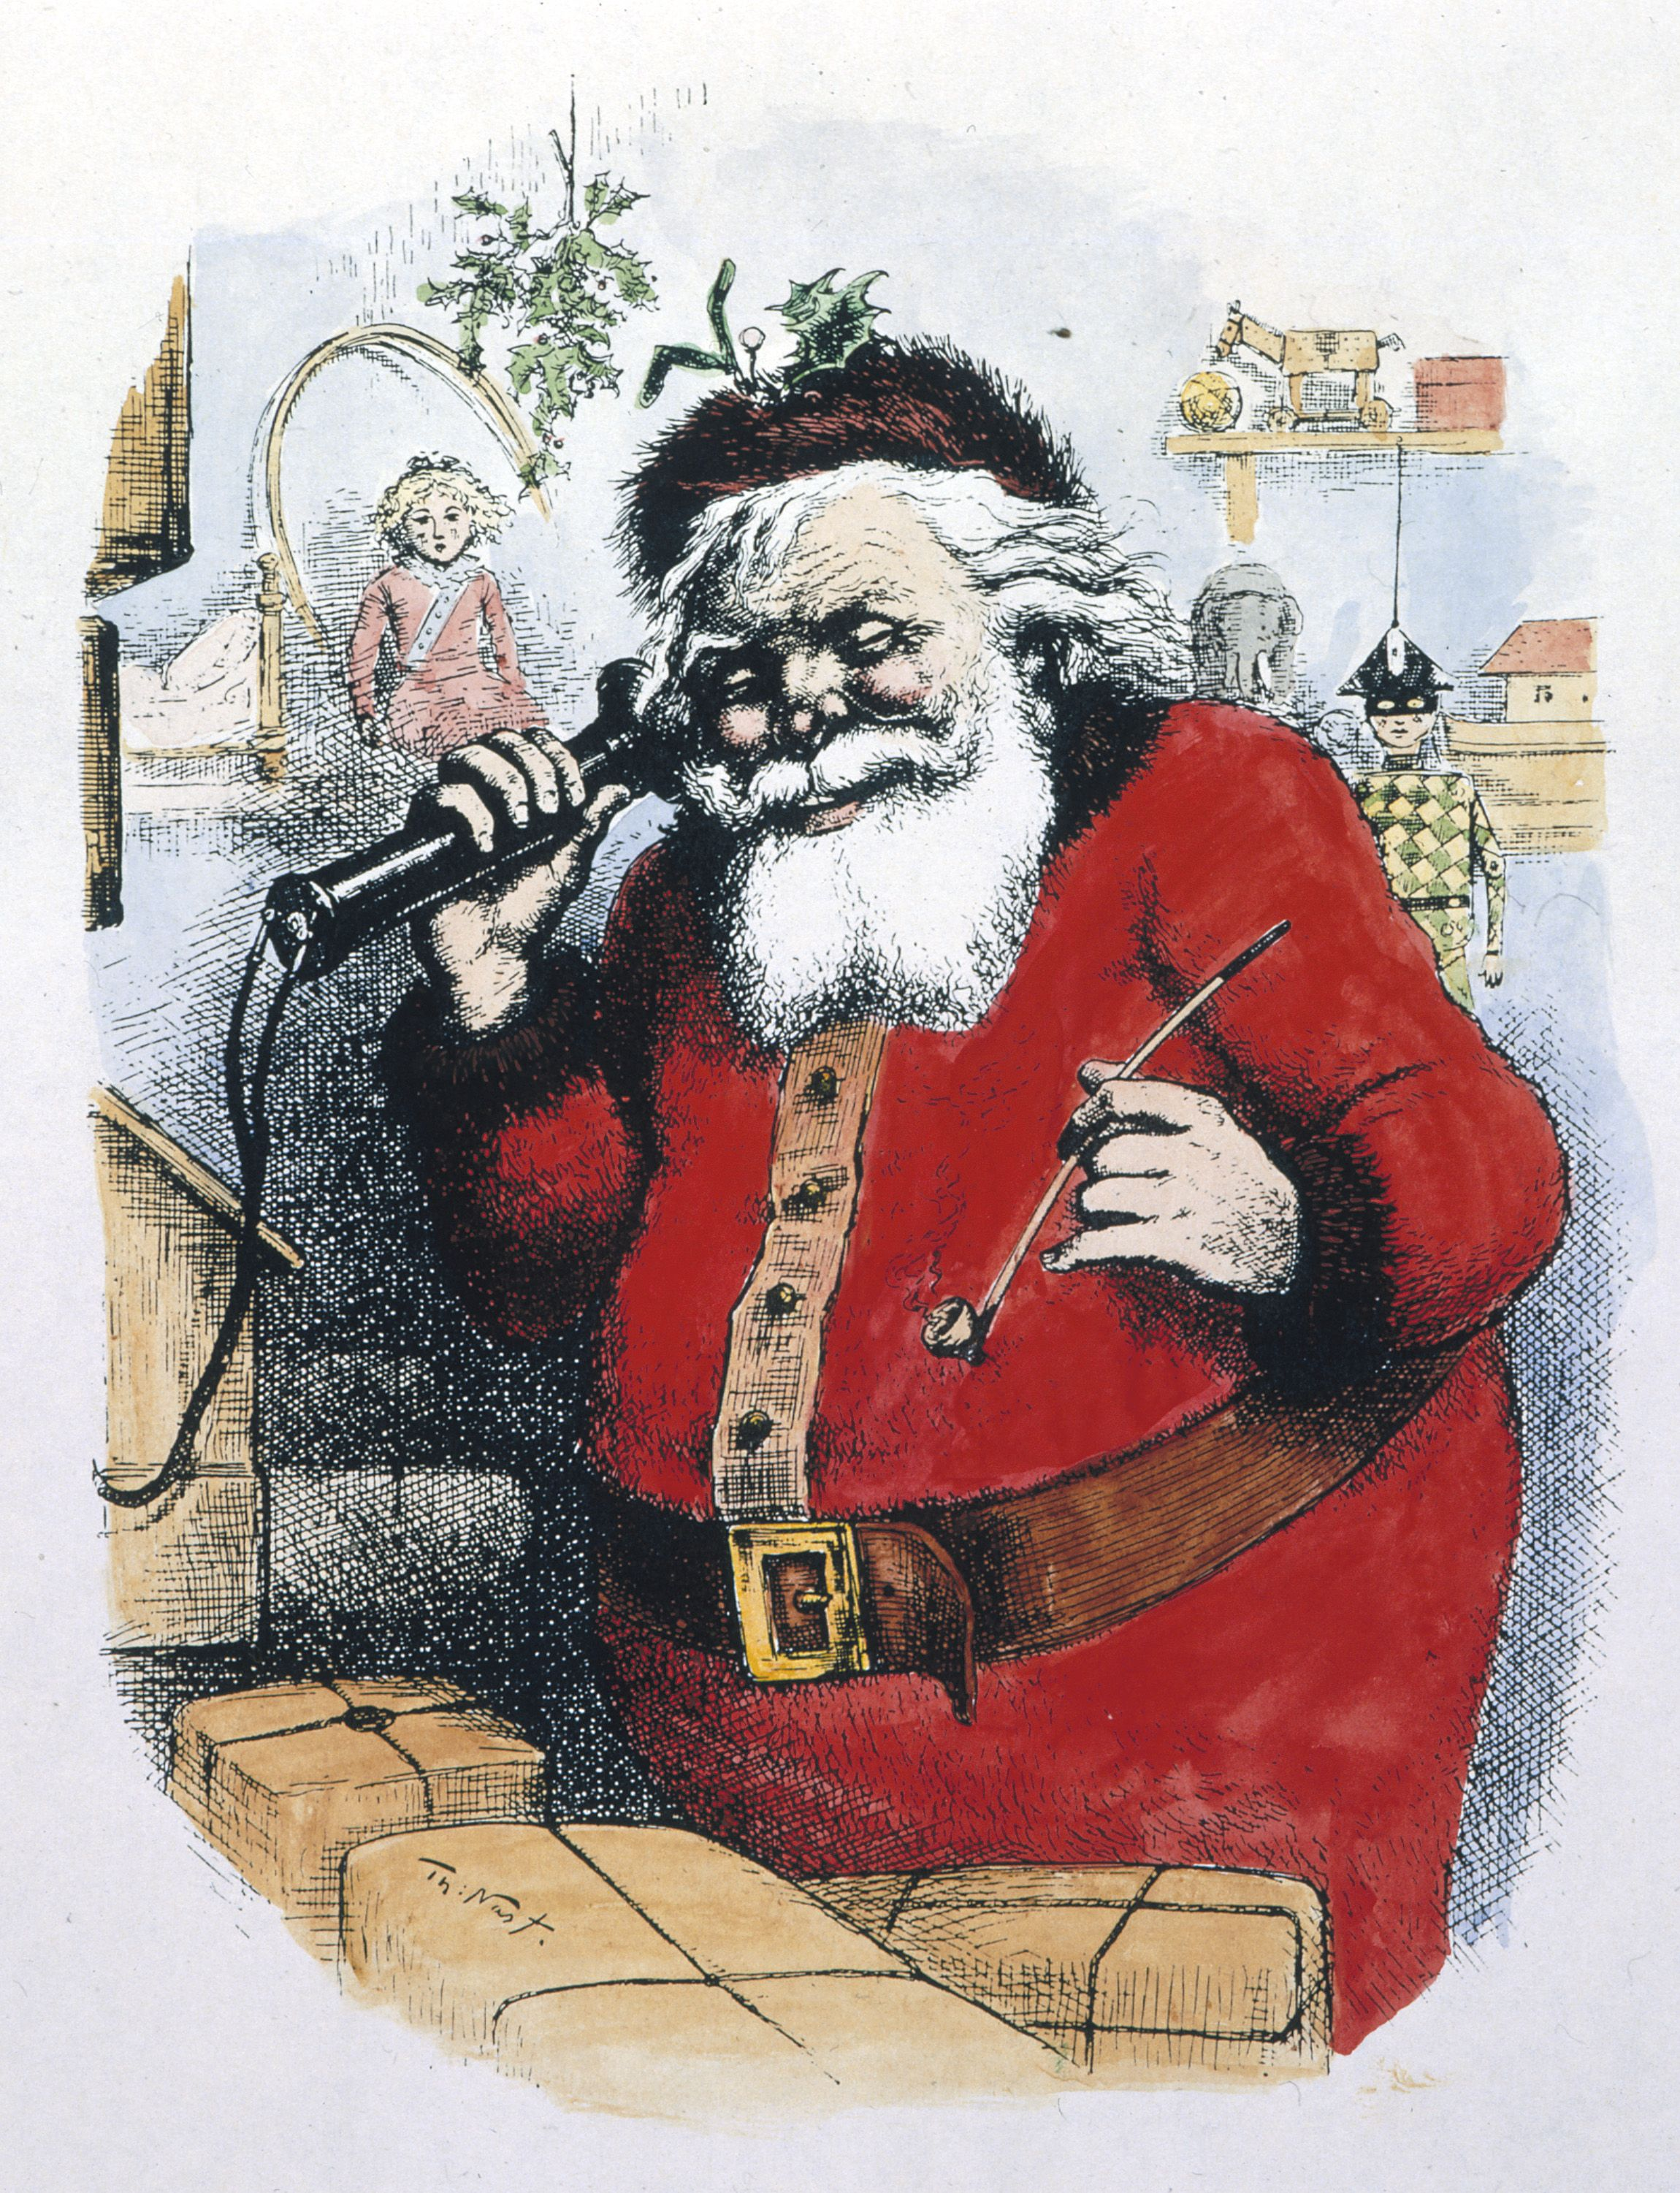 Colorized illustration of Father Christmas on the telephone by Thomas Nast, c. 1885, from Harper's Weekly Magazine.